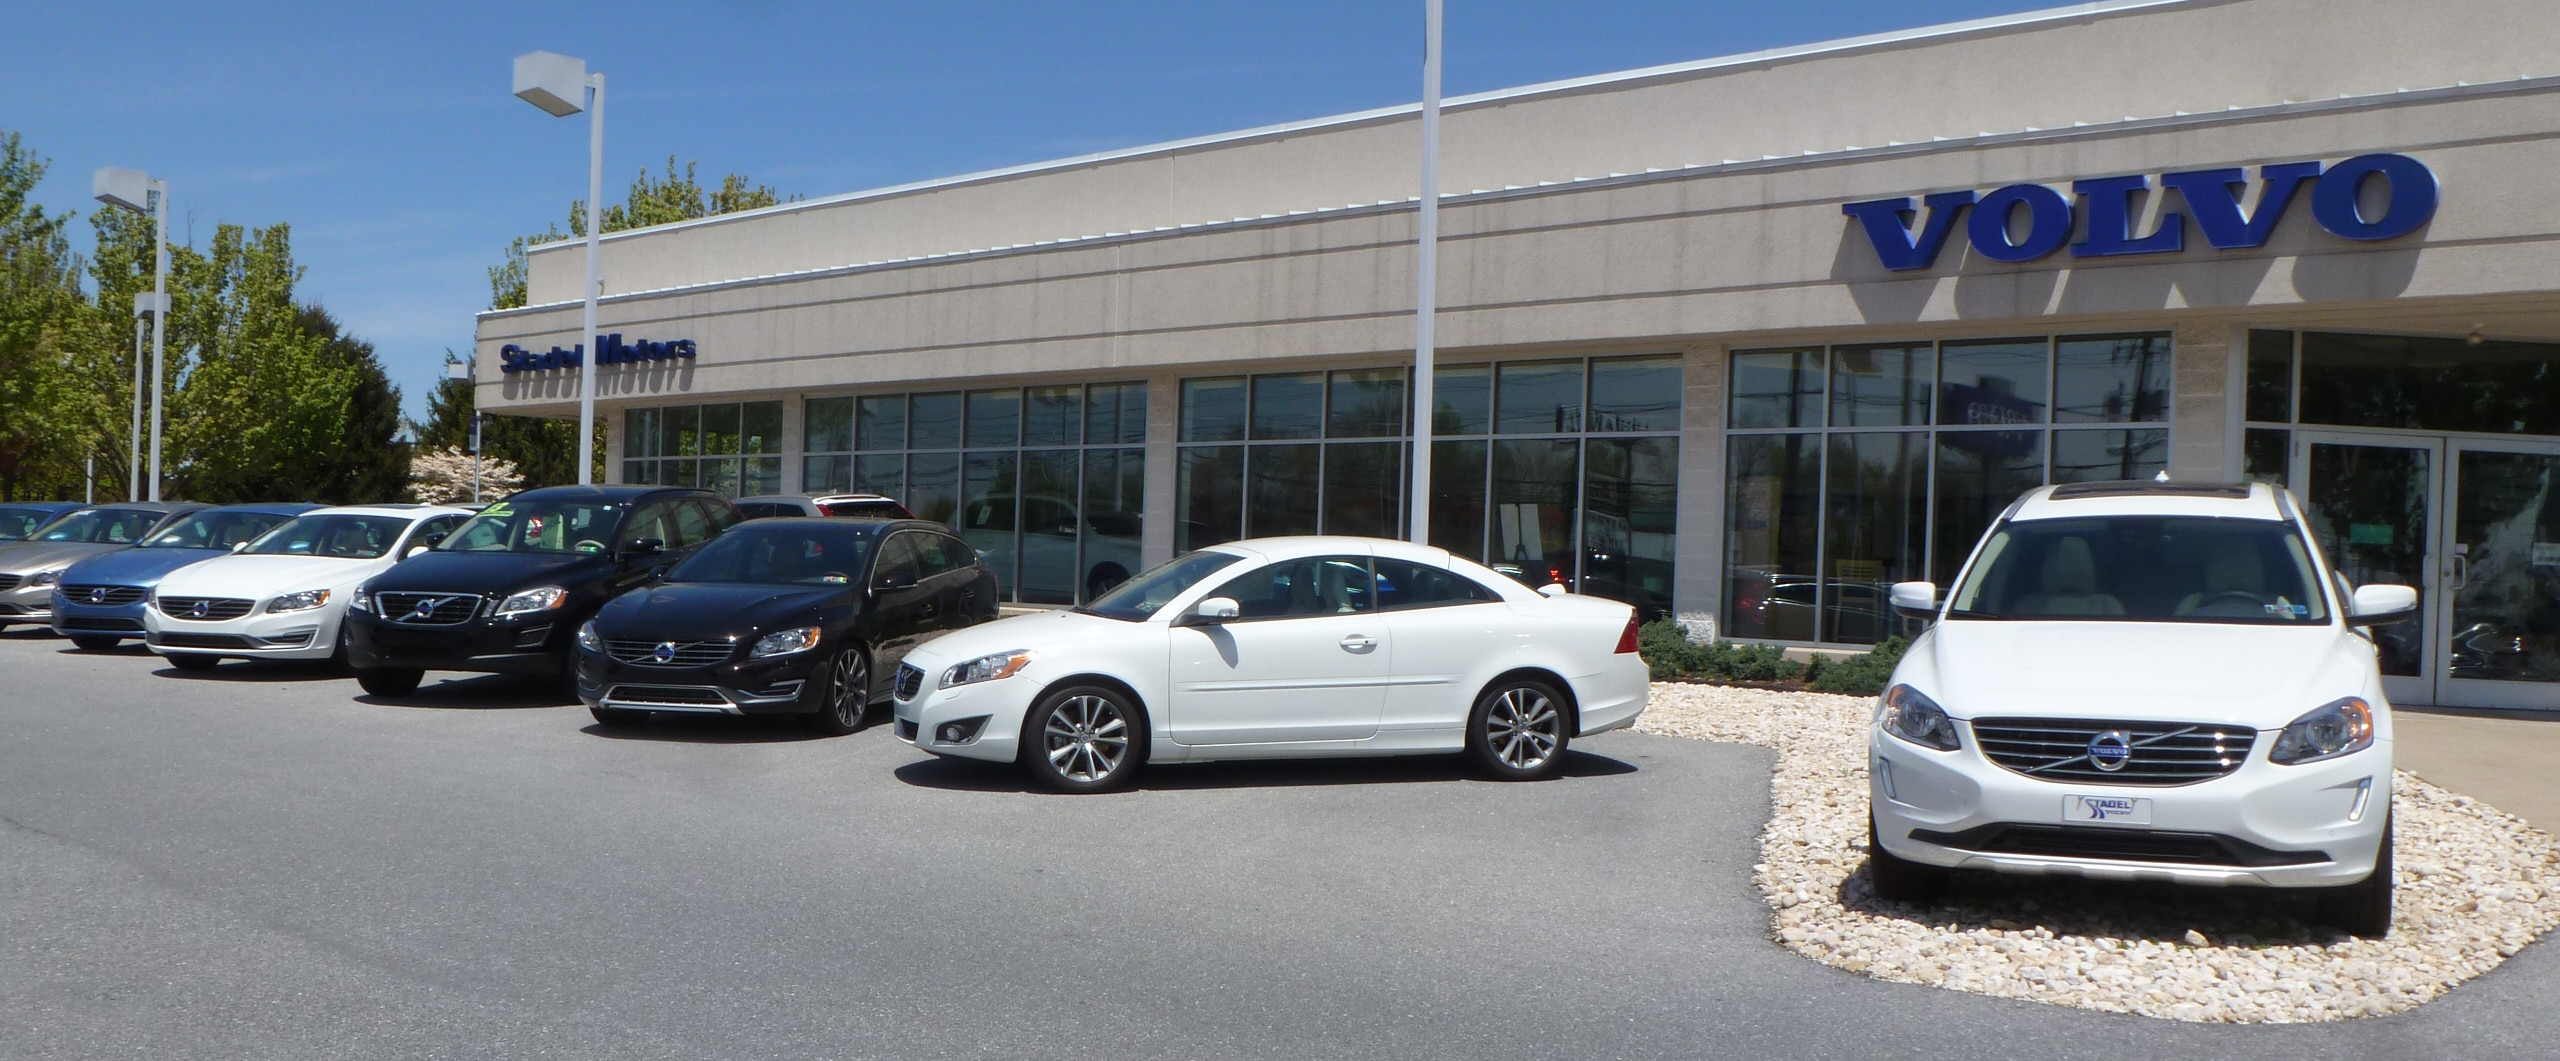 About Stadel Volvo New Volvo And Used Car Dealer Serving Lancaster Lititz Ephrata Pa And